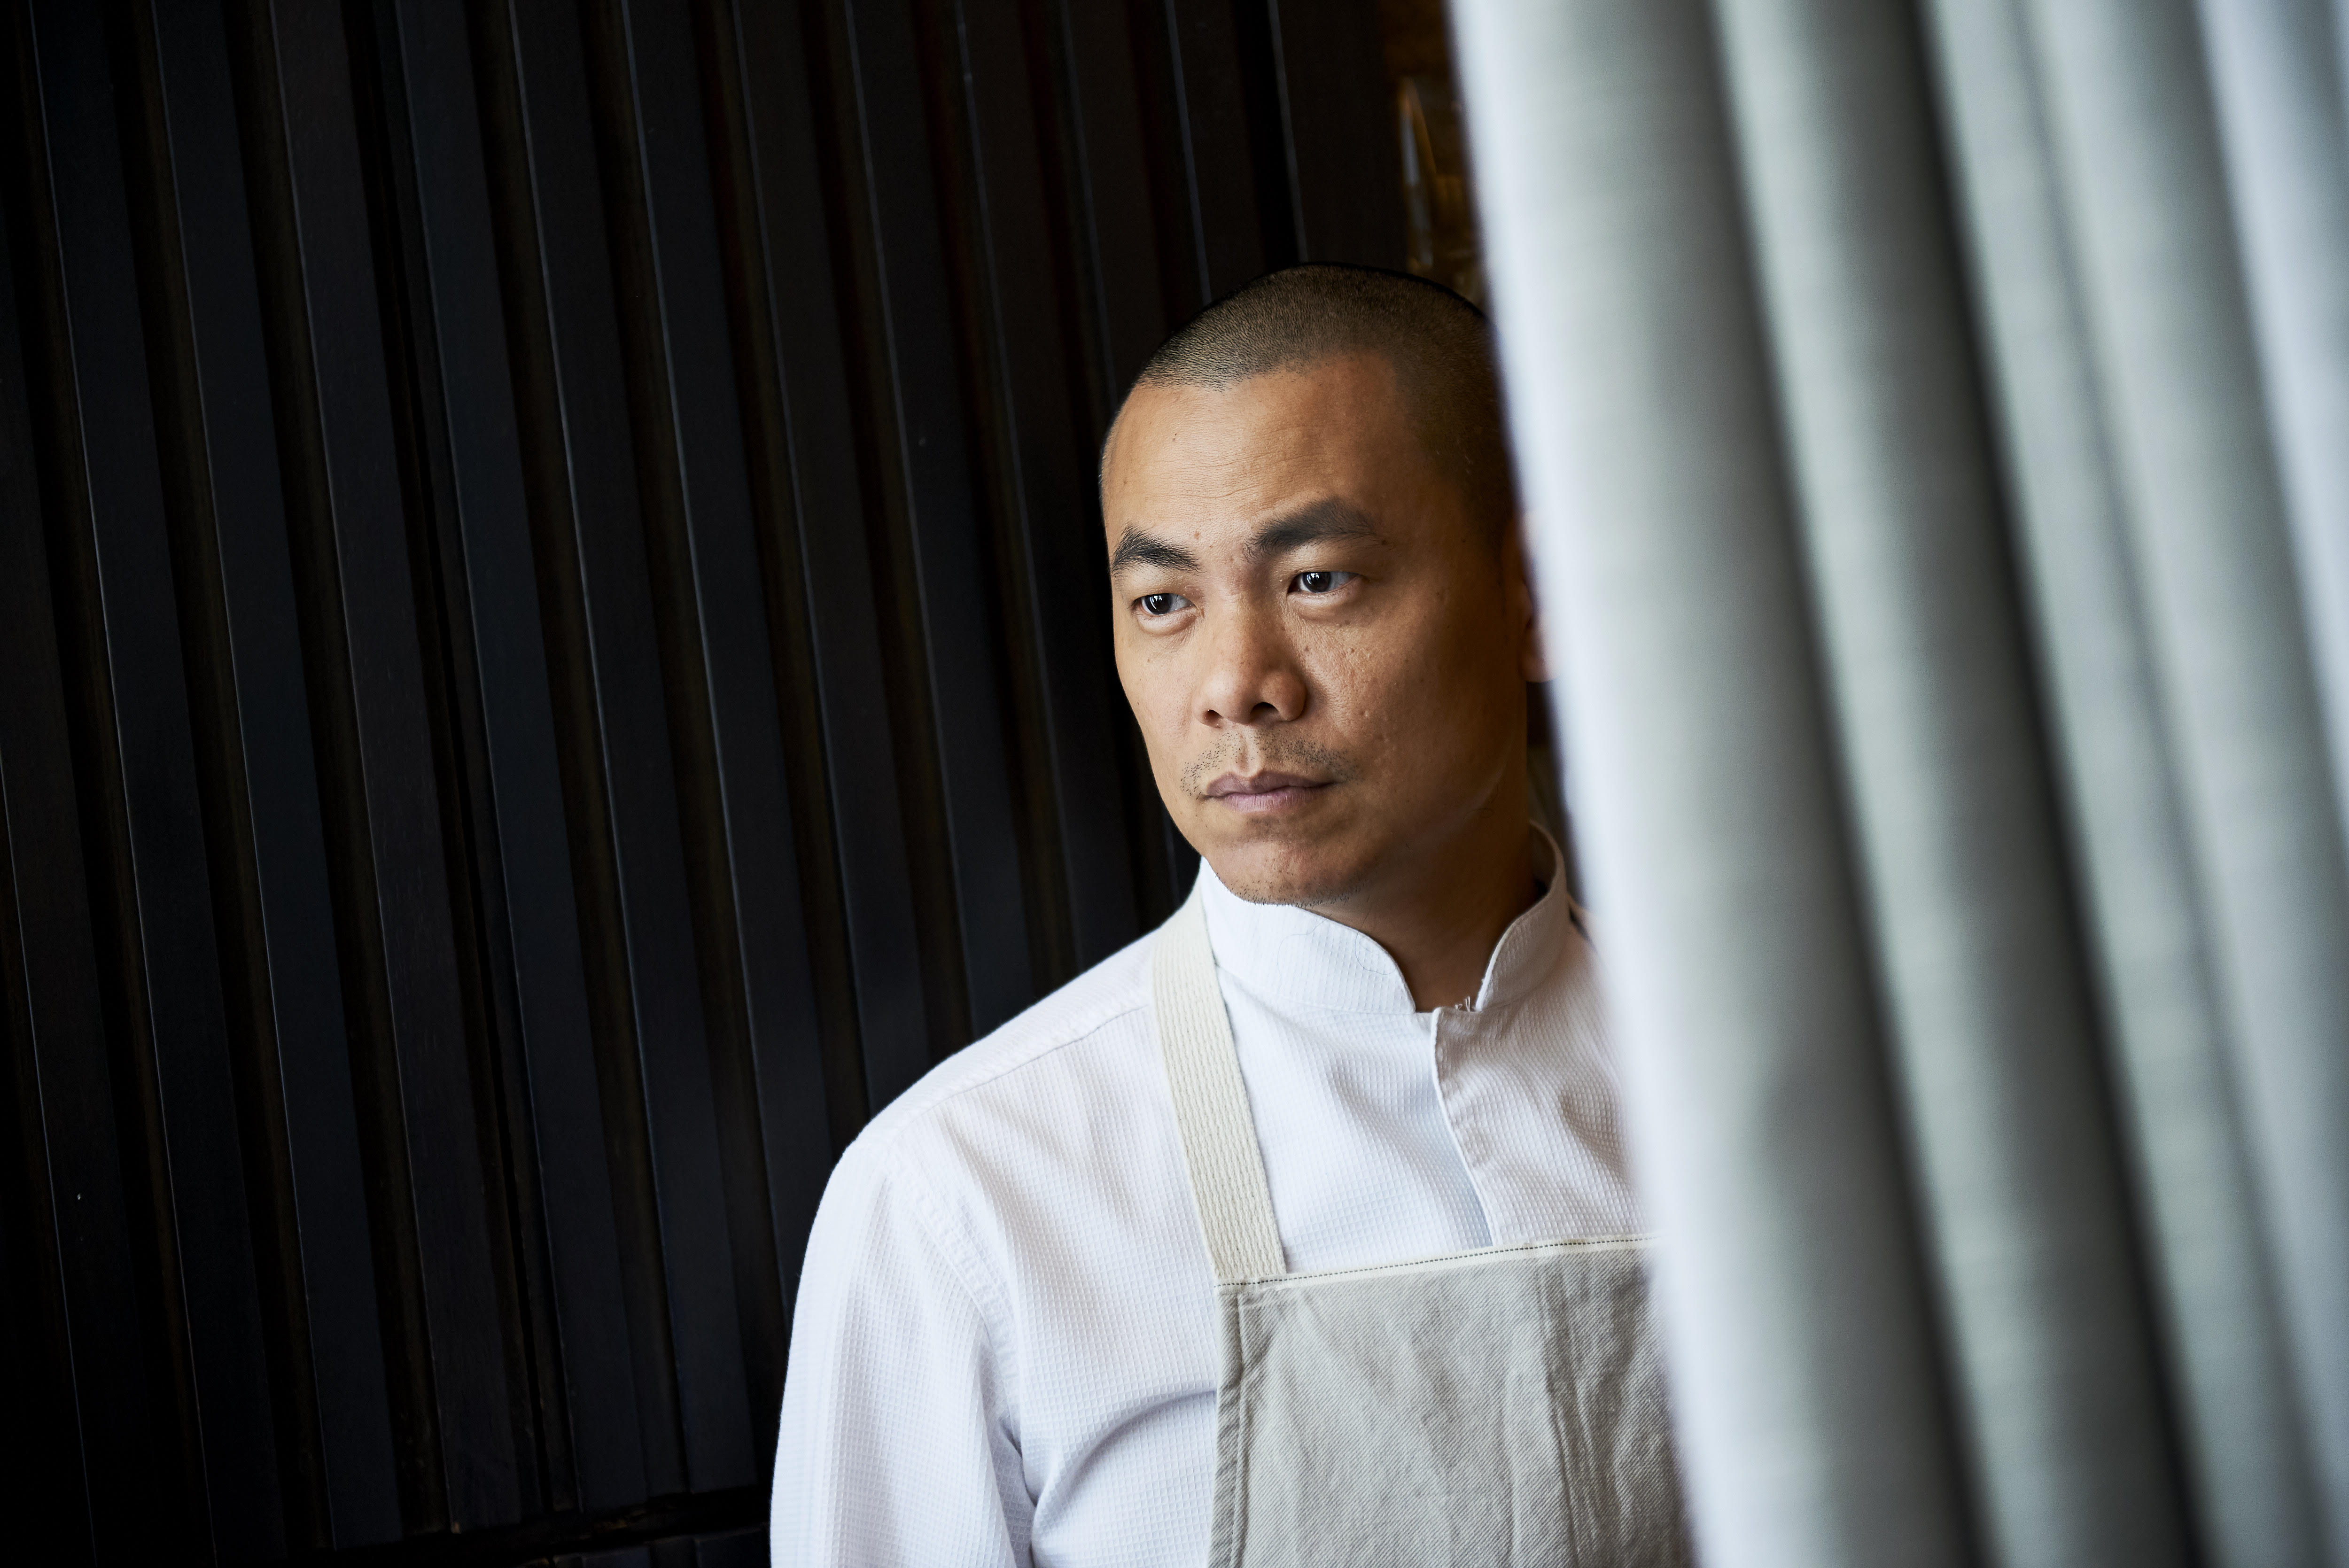 restaurant andre closes andre chiang asia's 50 best restaurants